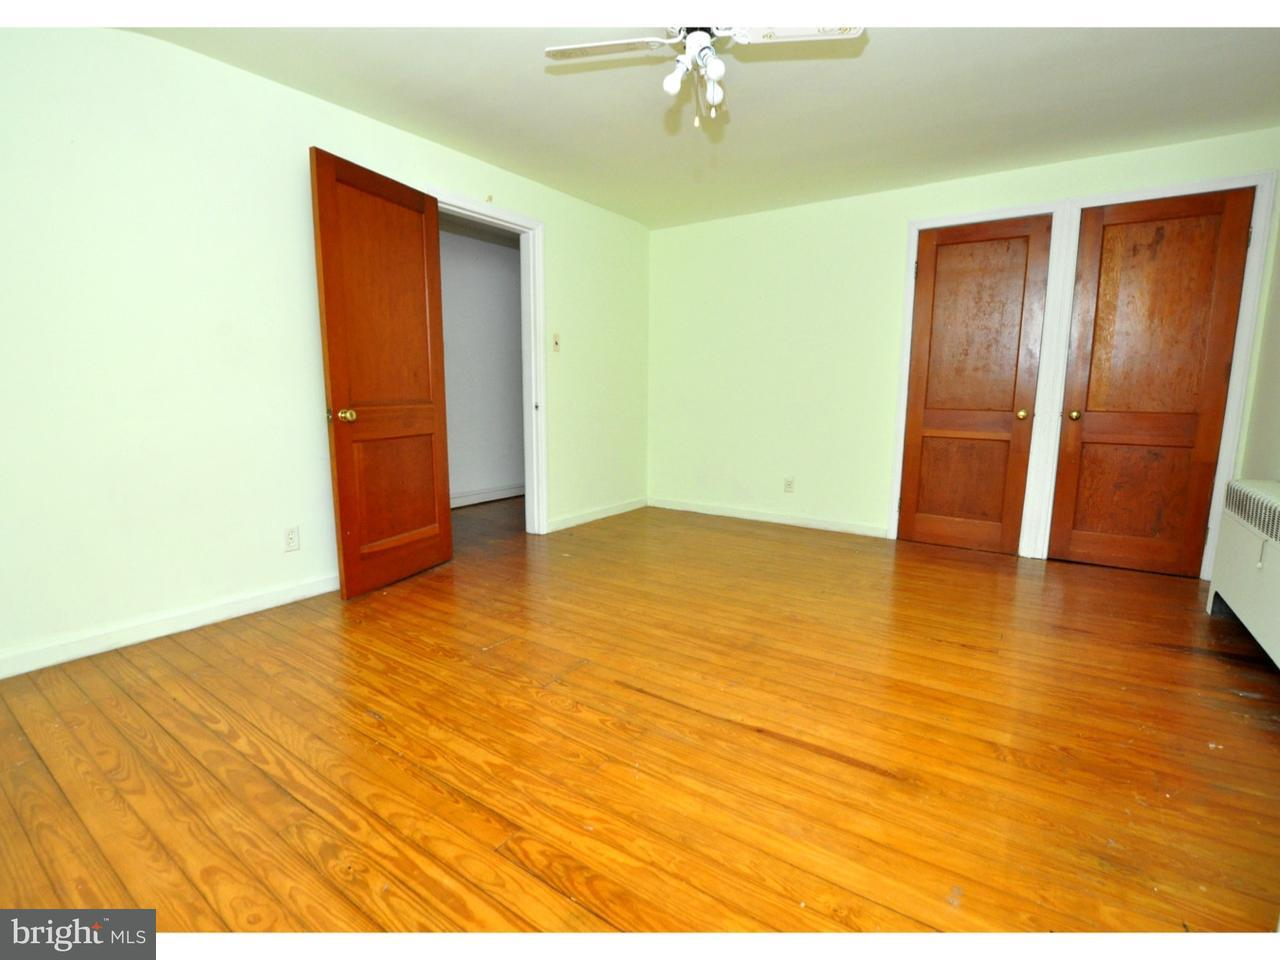 Additional photo for property listing at 156 W CENTRAL Avenue  Moorestown, Nueva Jersey 08057 Estados Unidos